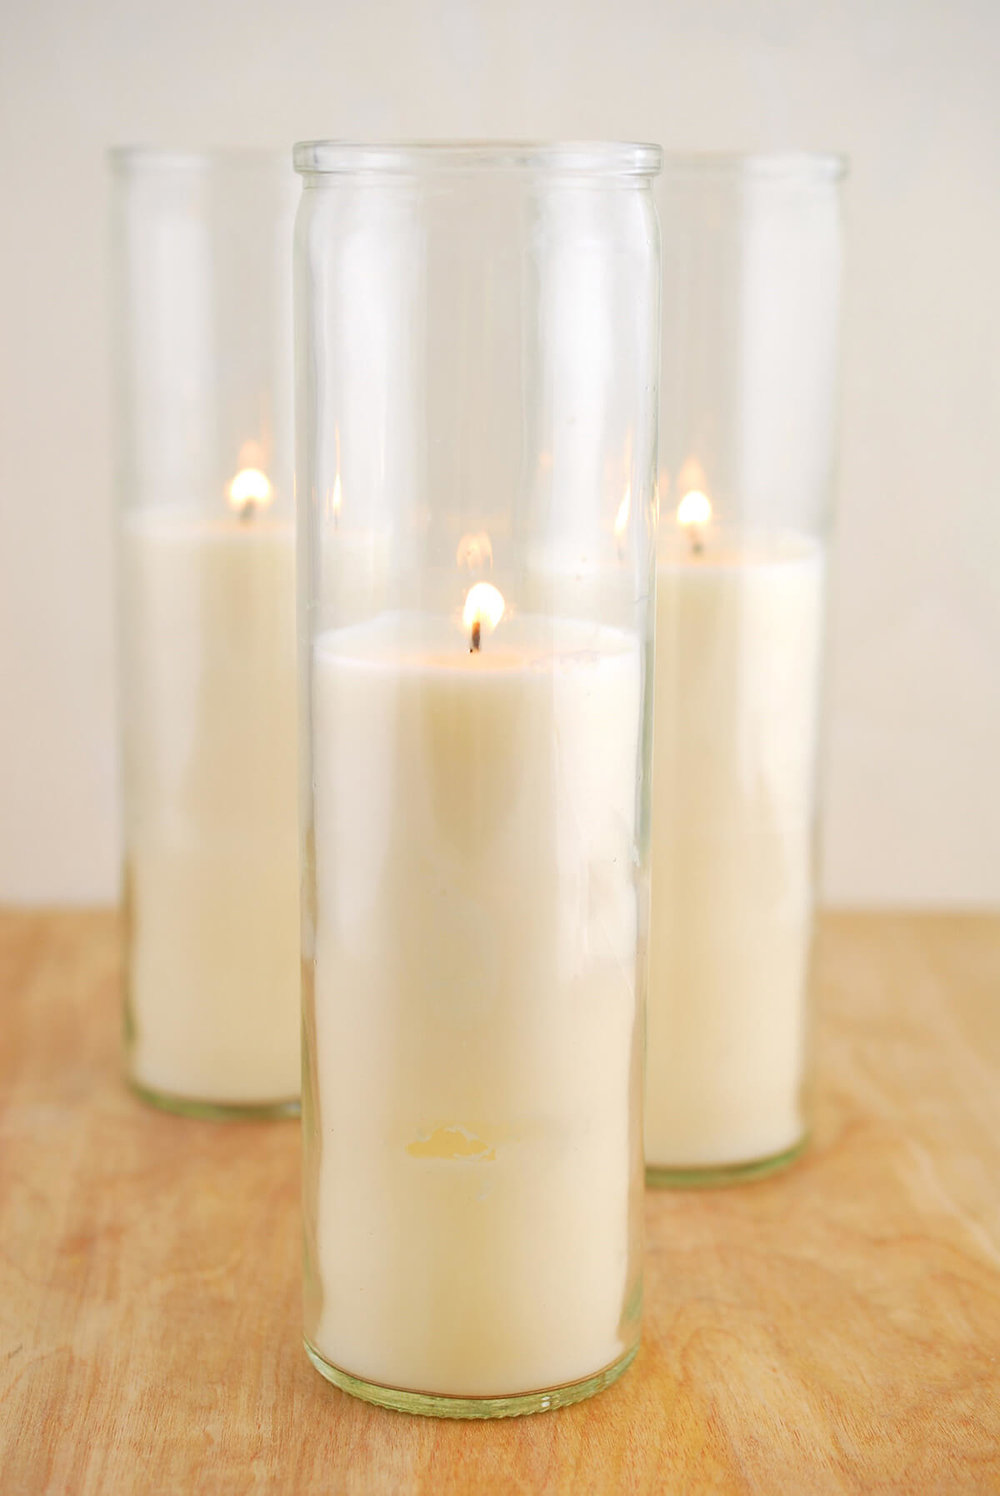 Pre-filled Hurricane Candles $8